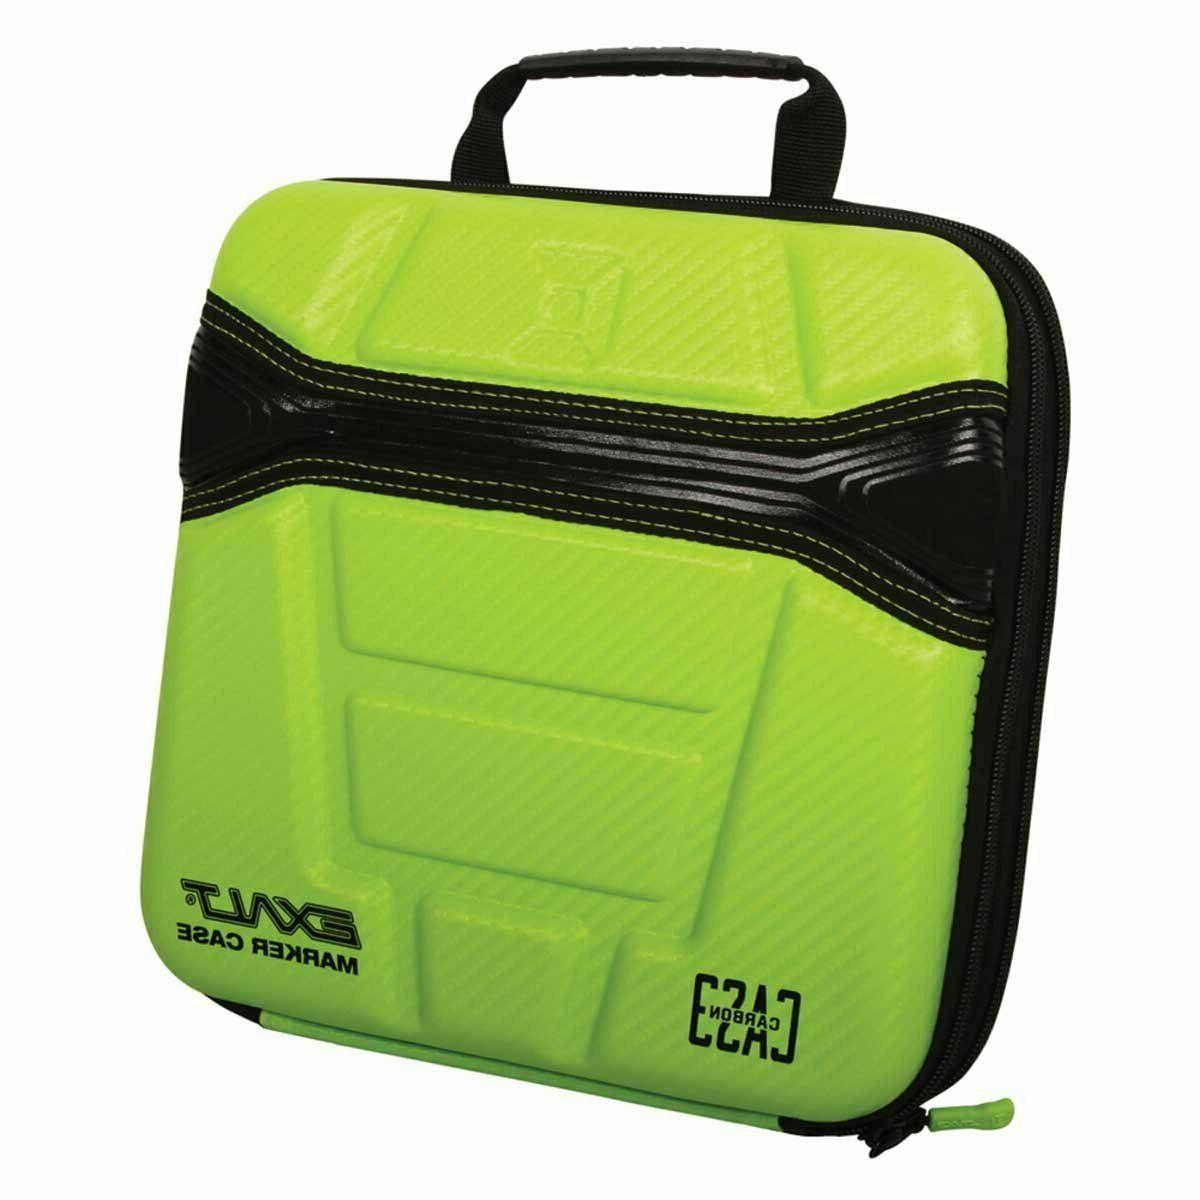 Exalt Paintball Carbon Series Marker Case/Gun Bag - Lime